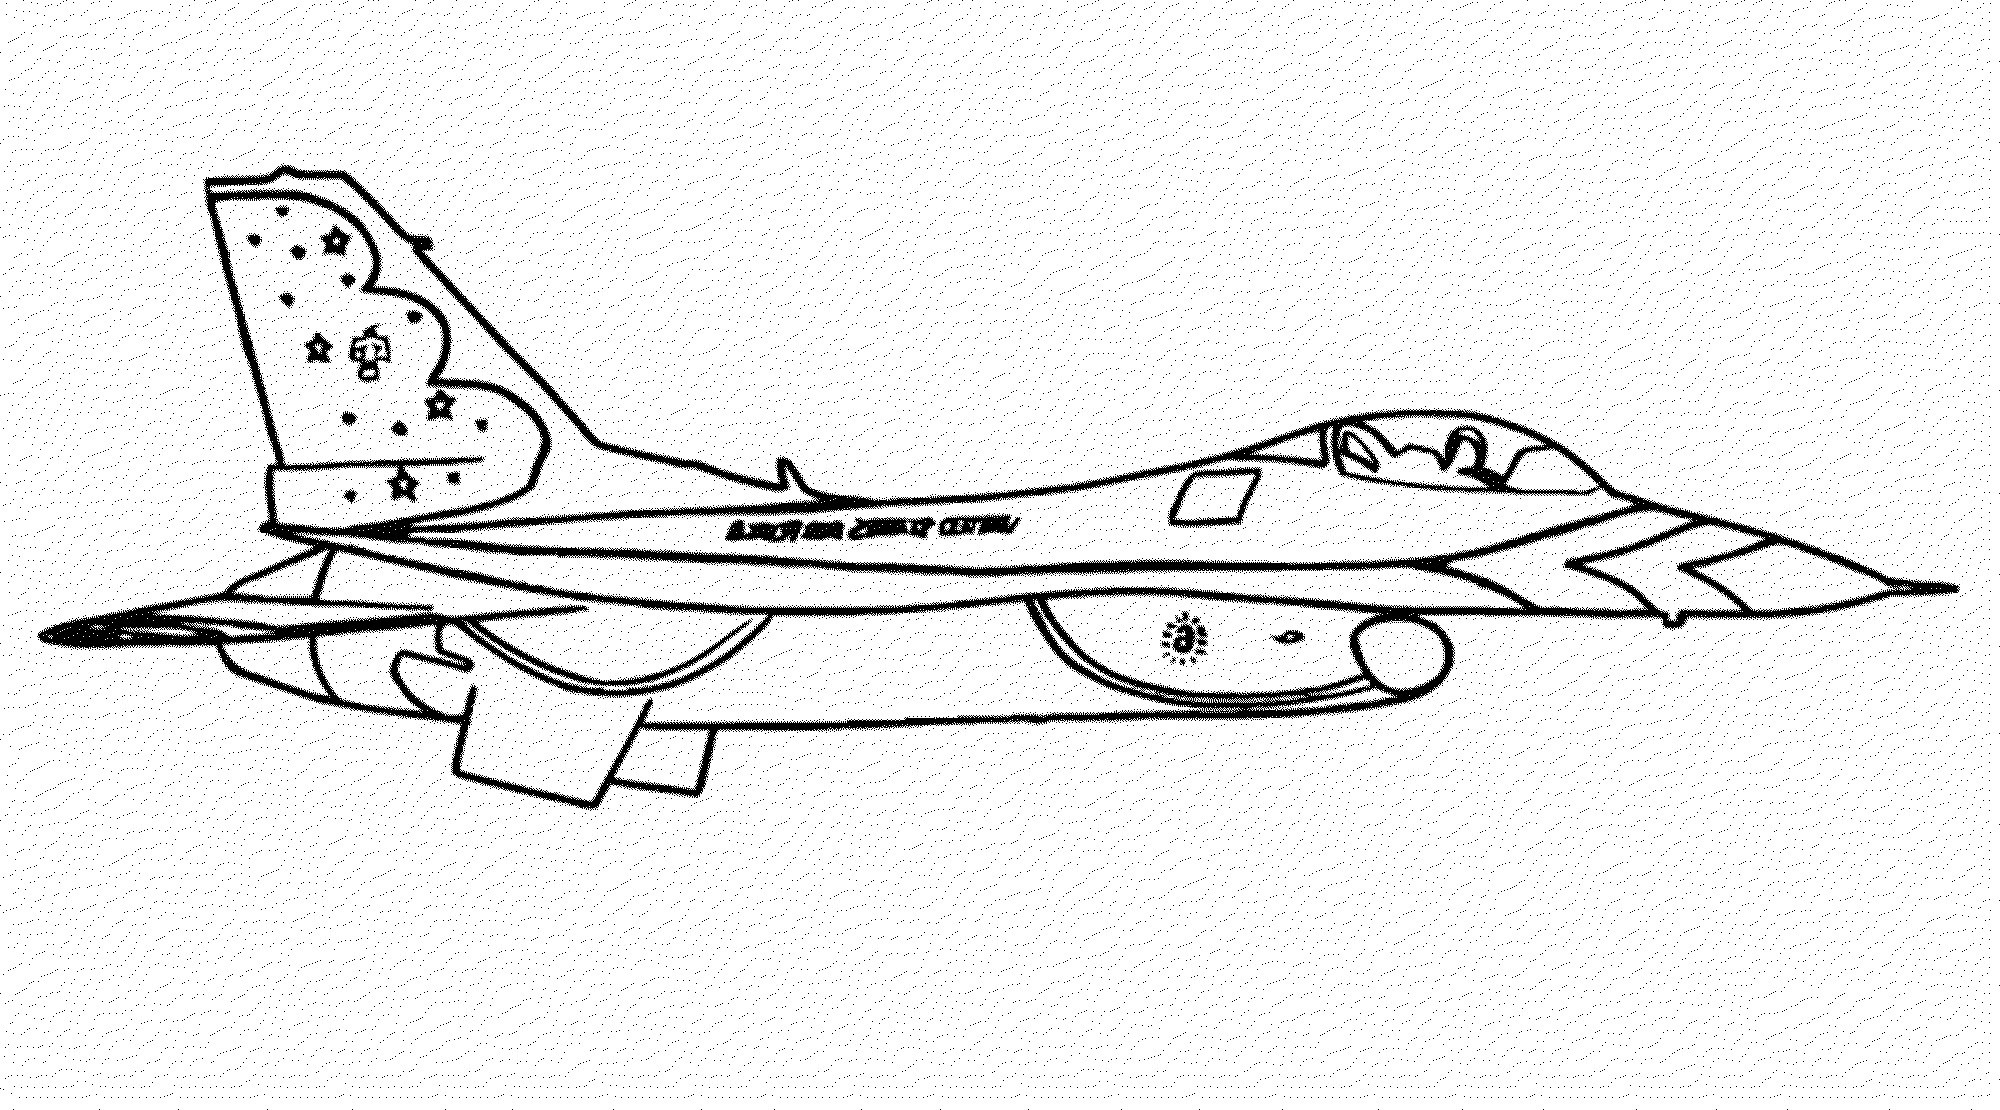 coloring jet airplane coloring pages free printable coloring pages at jet coloring